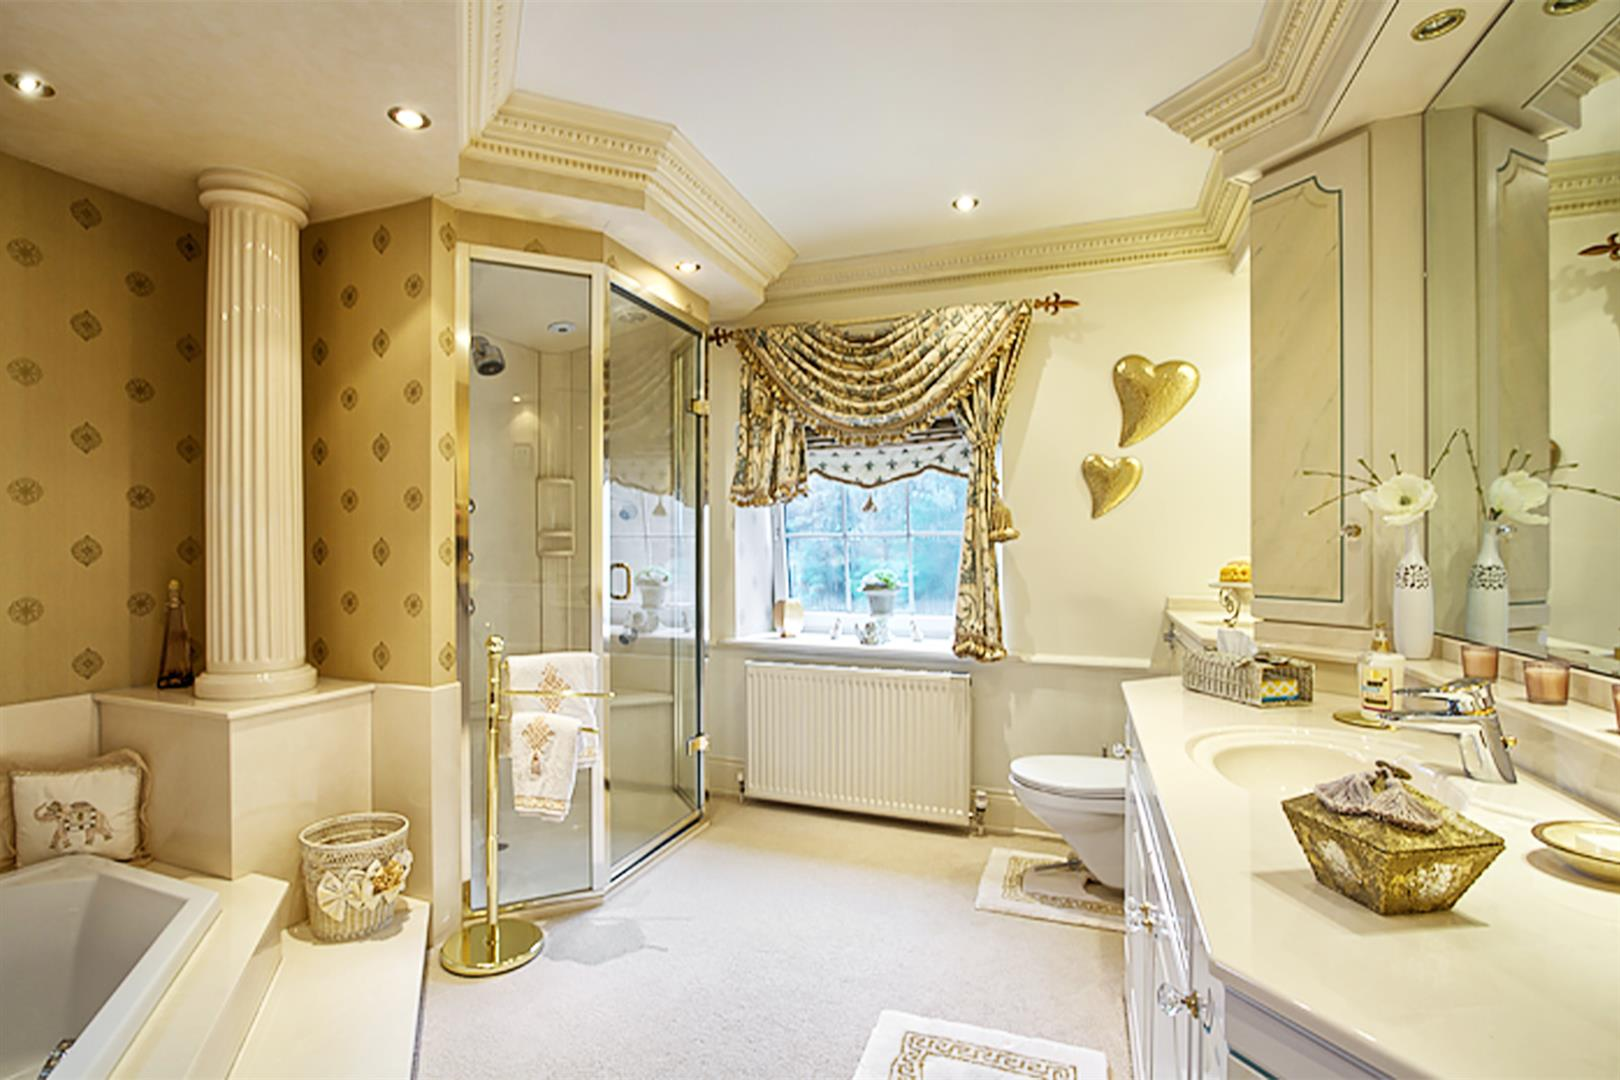 4 bedroom house For Sale in Bolton - master ensuite.png.